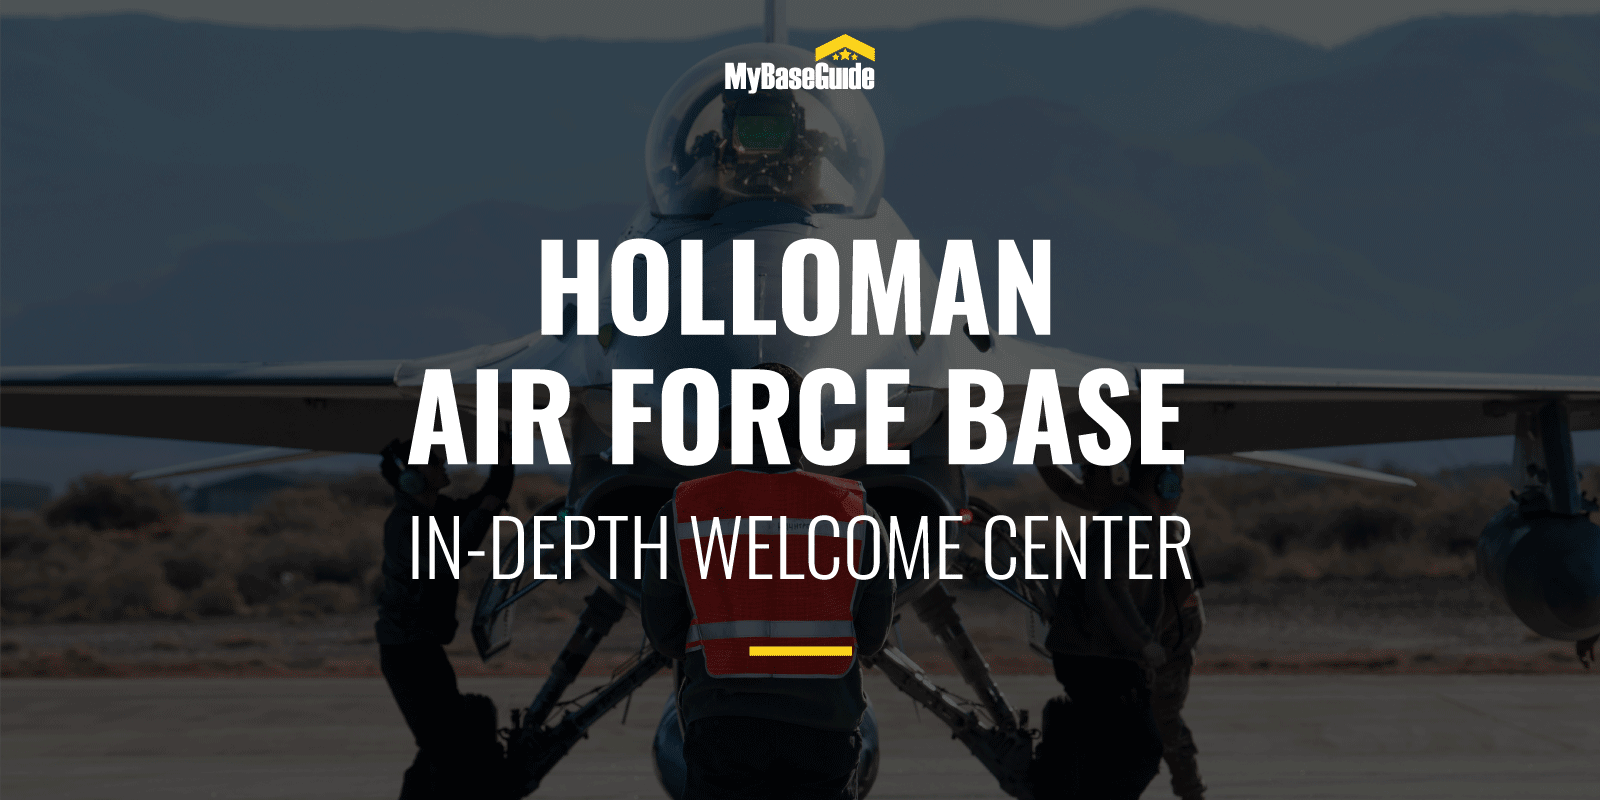 Holloman Air Force Base: In-Depth Welcome Center